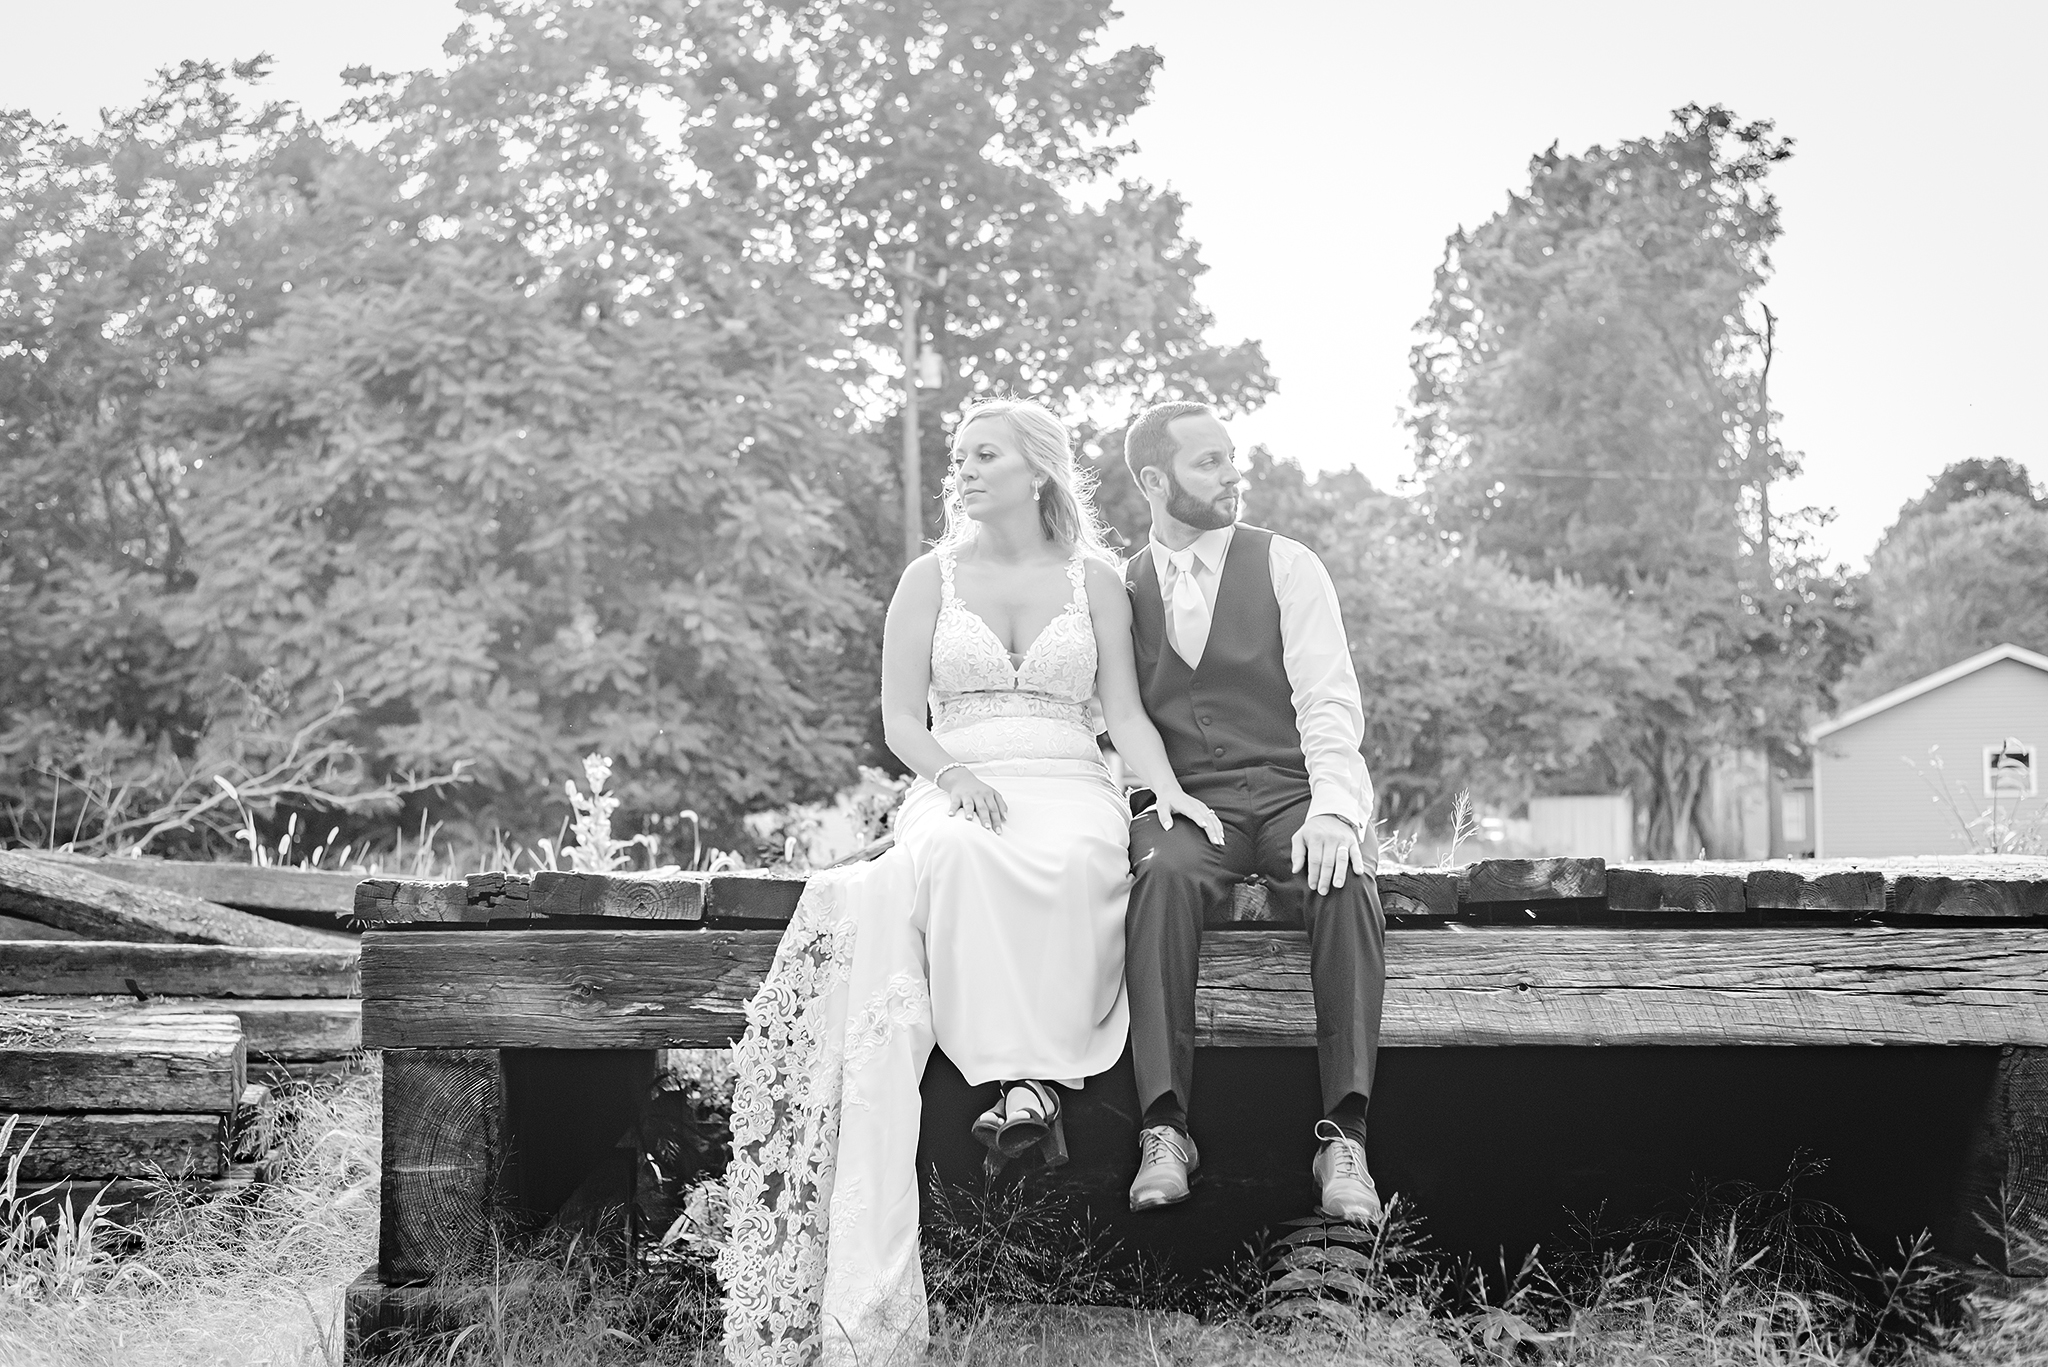 Lindsay-Adkins-Photography-Michigan-Wedding-Photographer-Tecumseh-Michigan-45b